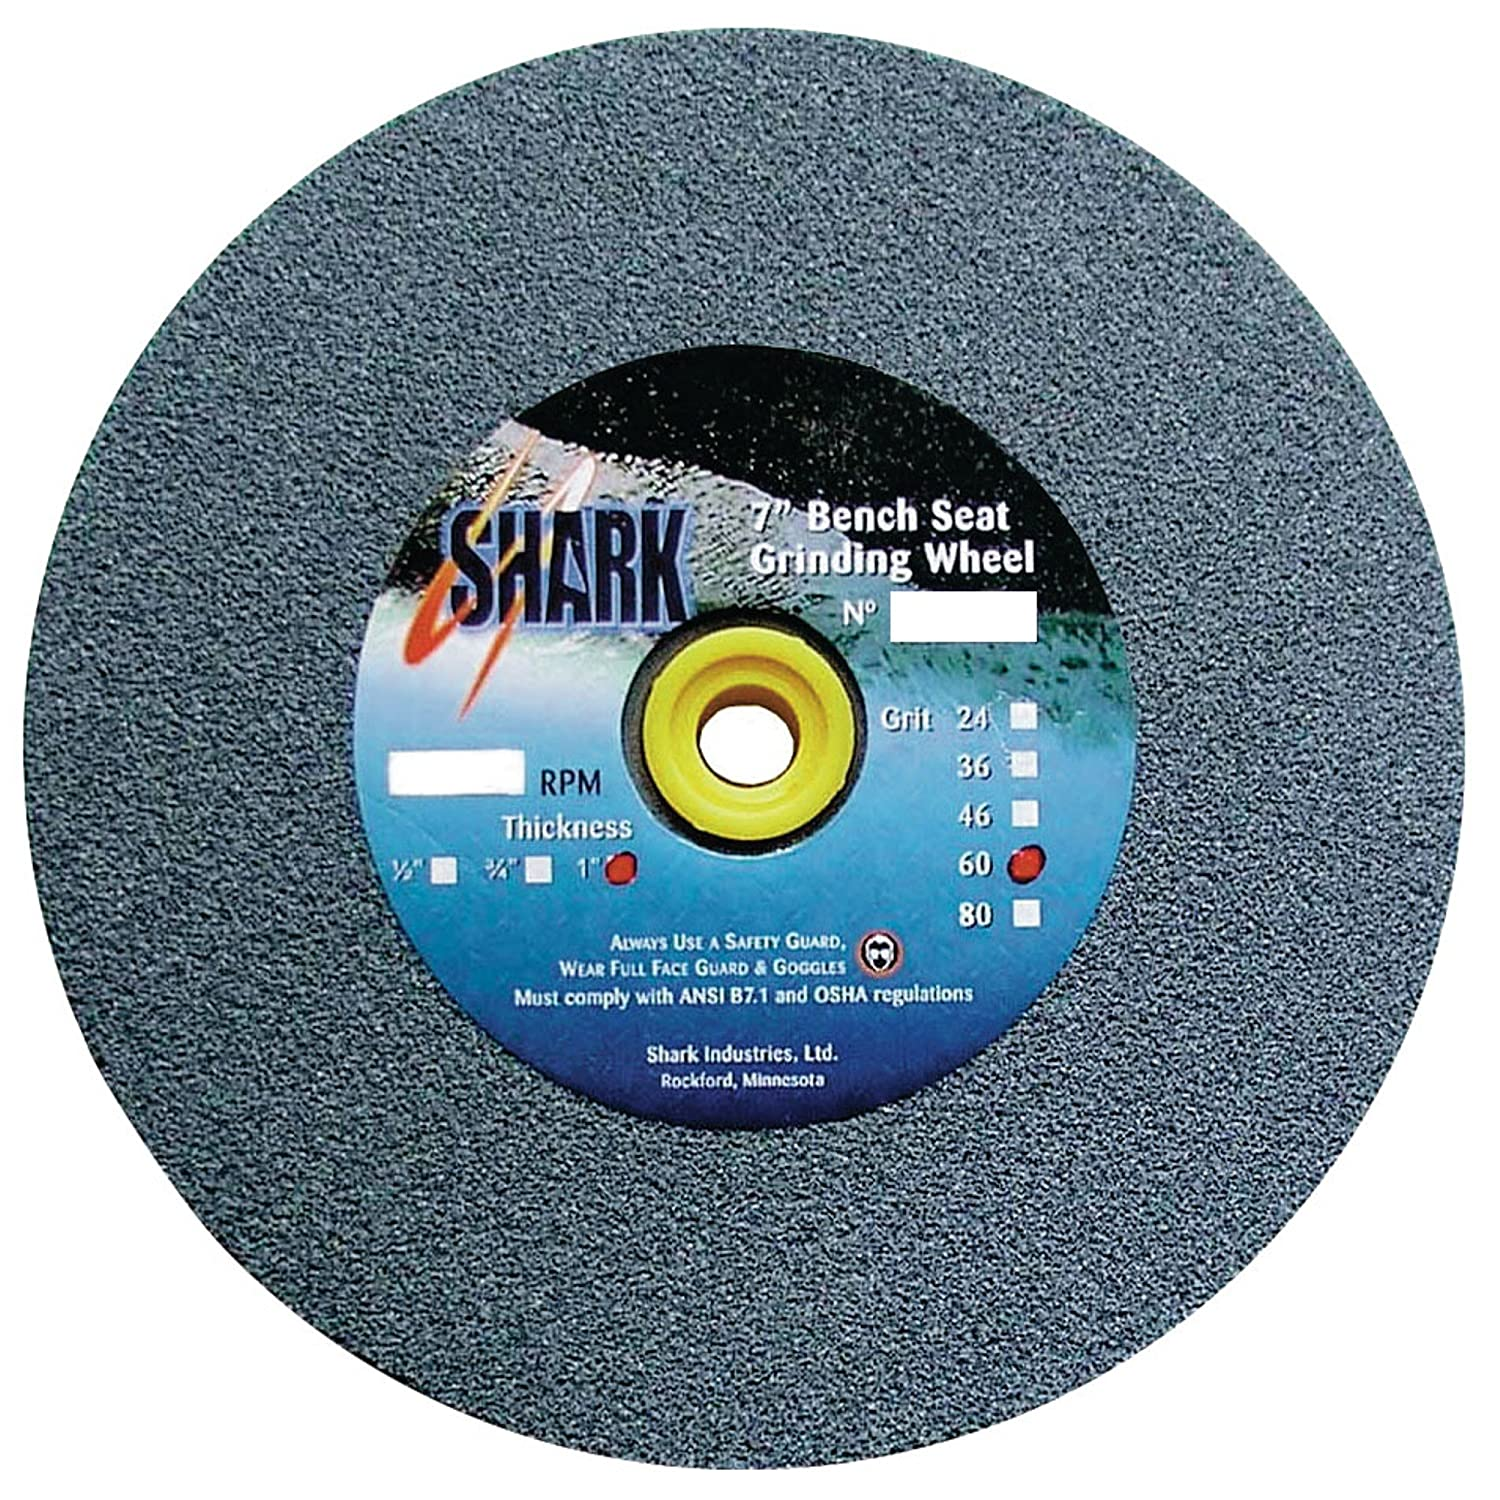 Shark 2016    6-Inch by 0.75-Inch by 1-Inch Bench Seat Grinding Wheel with Grit-36